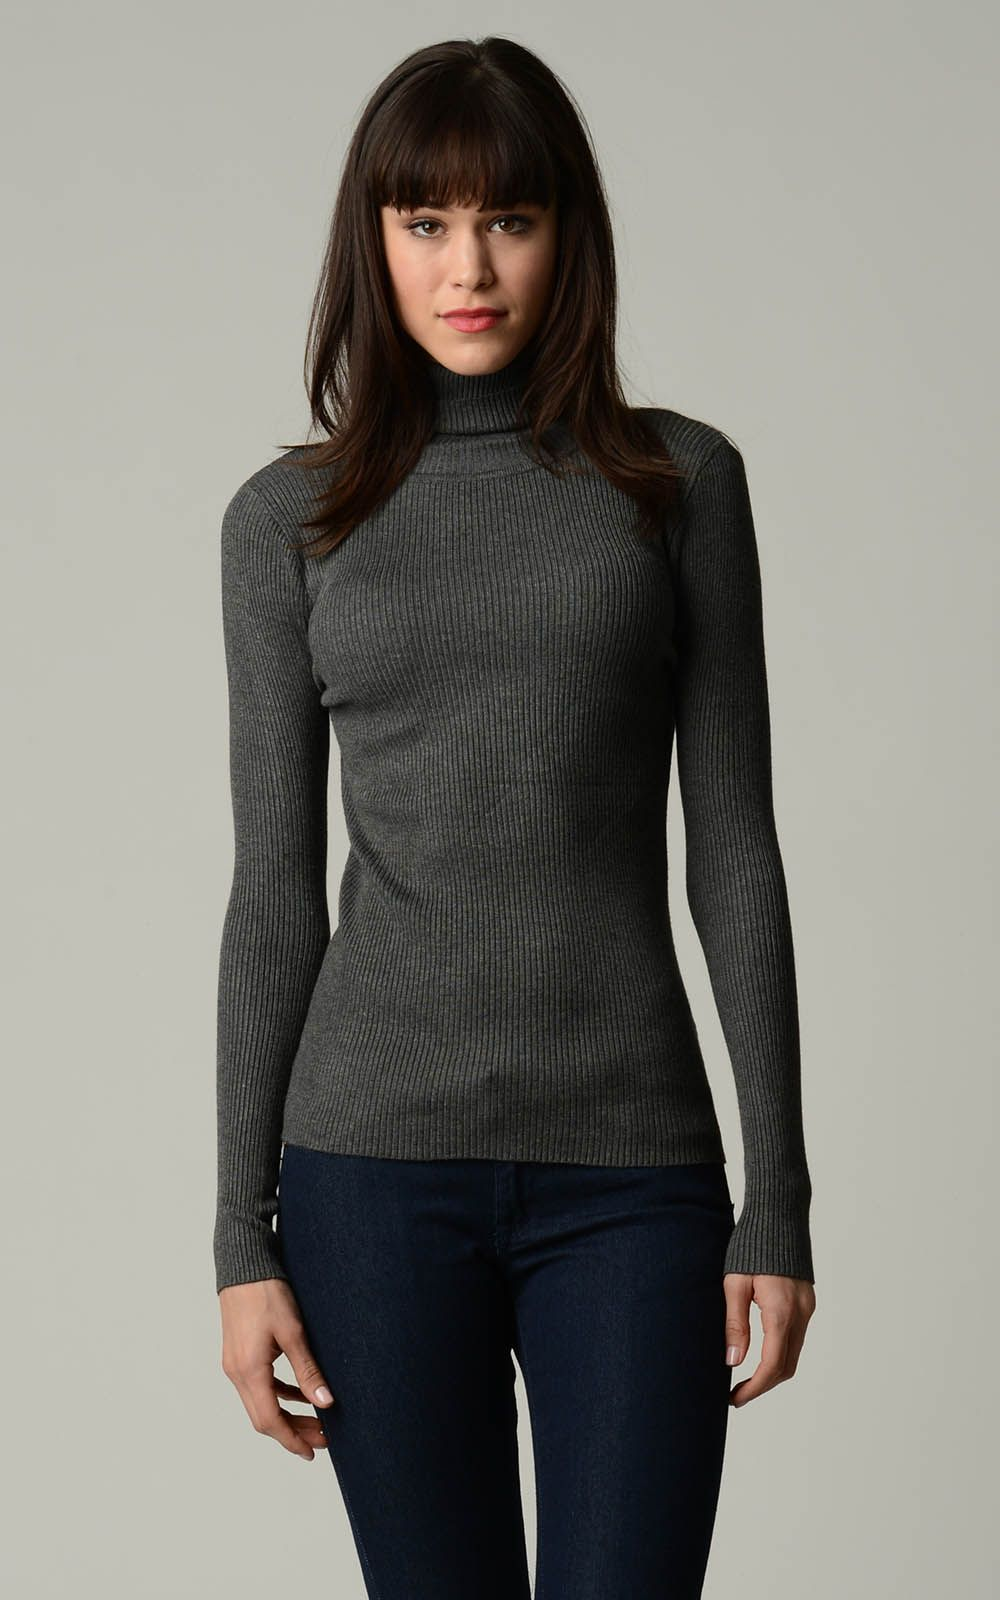 Dinamit Jeans Turtleneck Sweater | Things to Wear | Pinterest ...